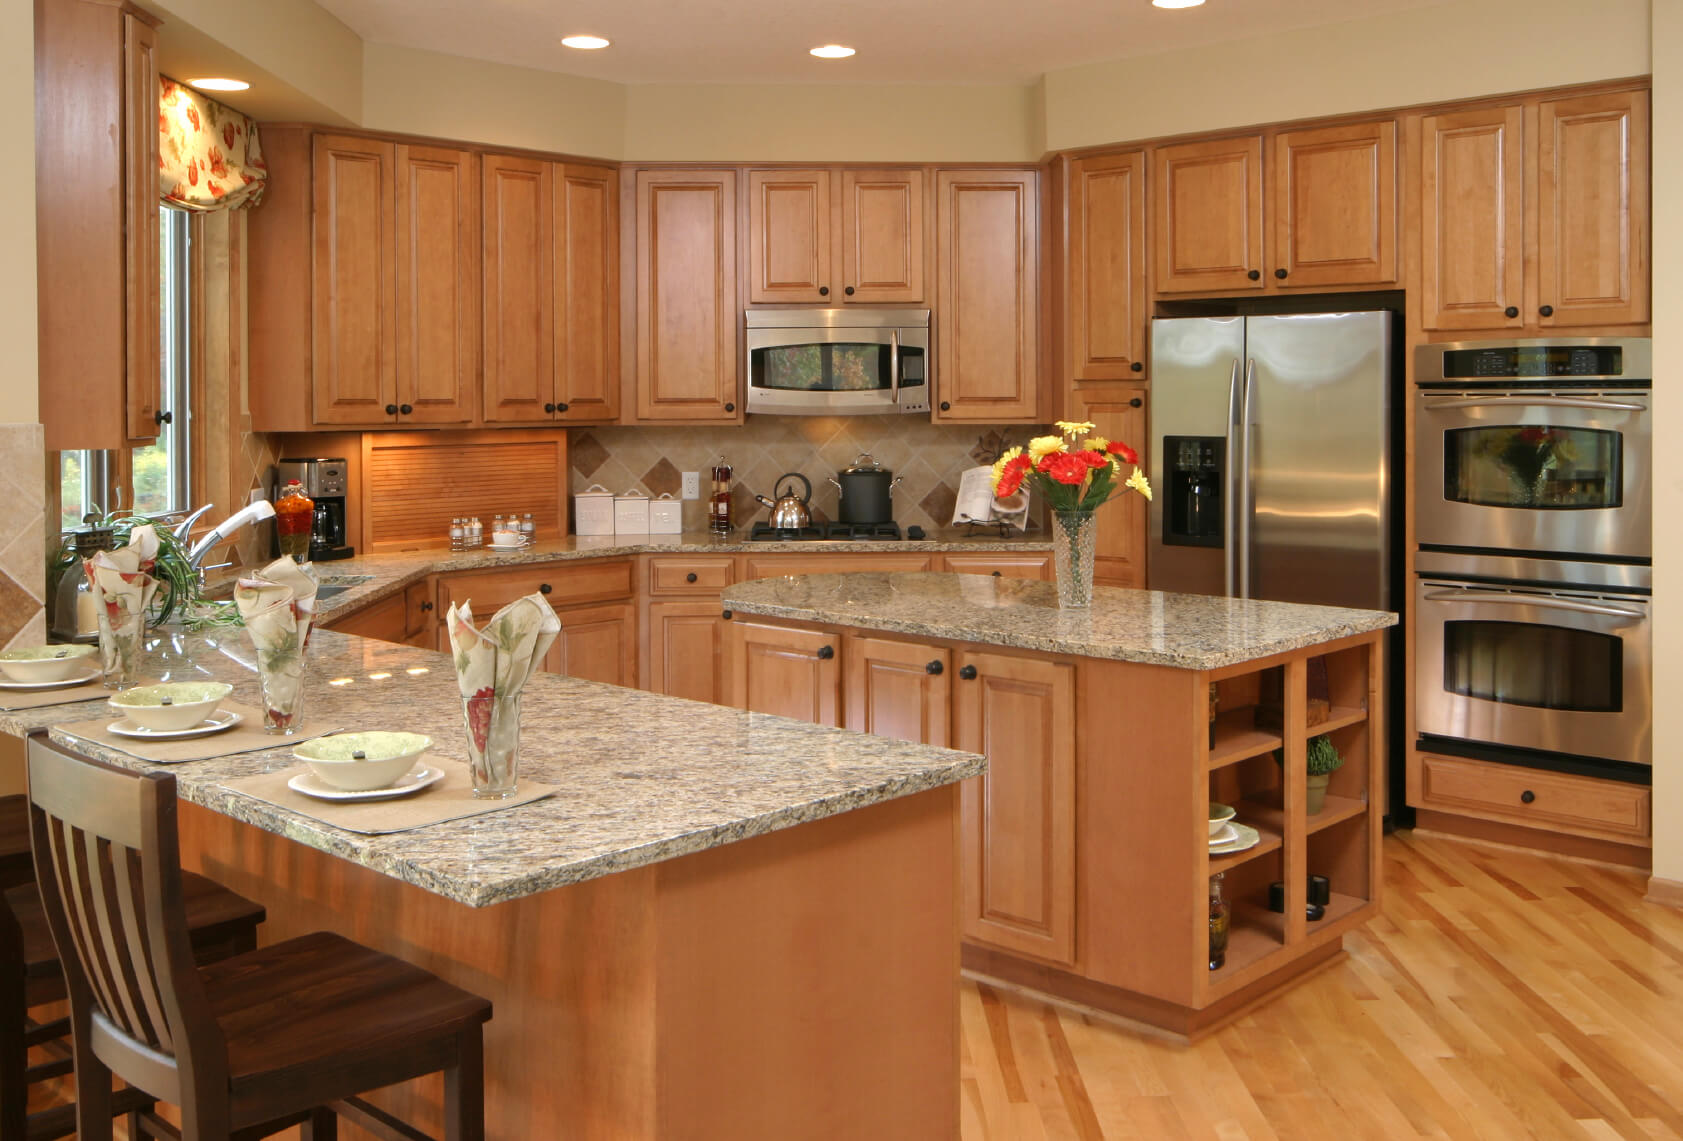 25 best kitchen ideas remodeling photos houzz how to do home